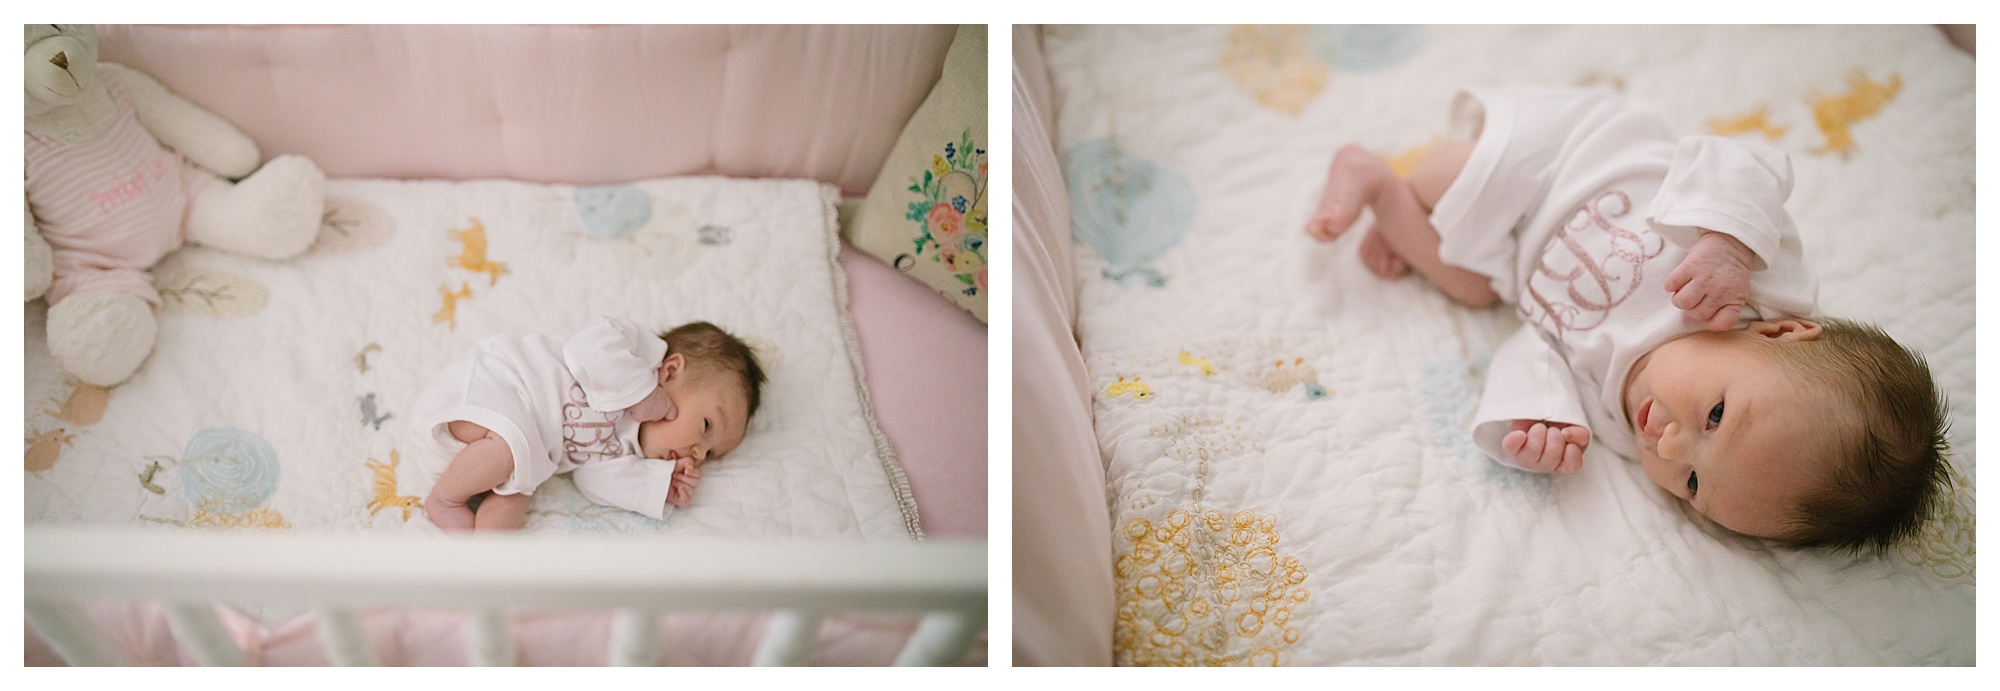 Emily Lapish Photo + Film documentary newborn photography_0030.jpg